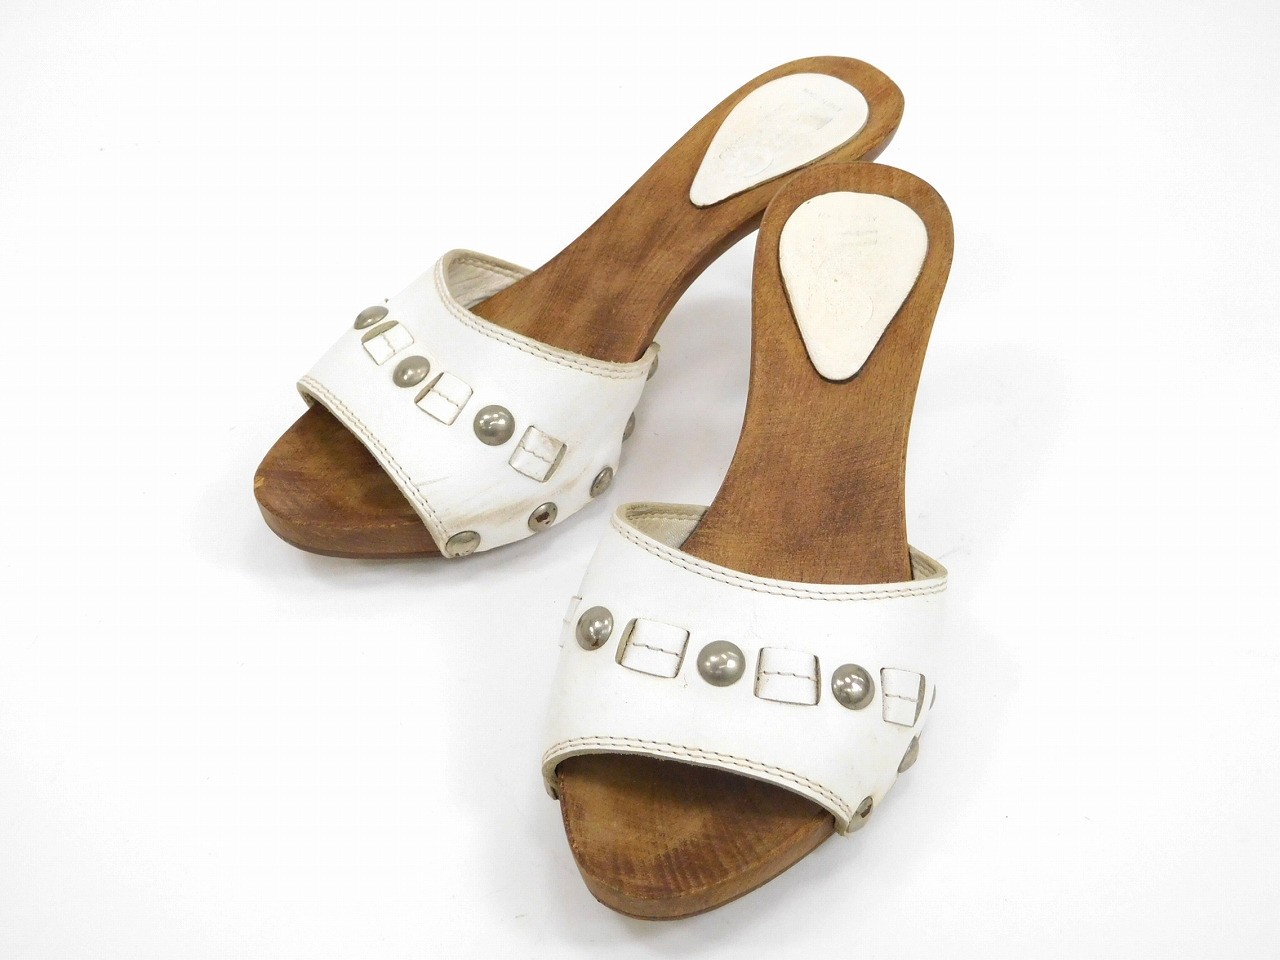 2d5ab189 White X natural U4397 with Dolce & Gabbana DOLCE&GABBANA sandals  mule shoes shoes ...